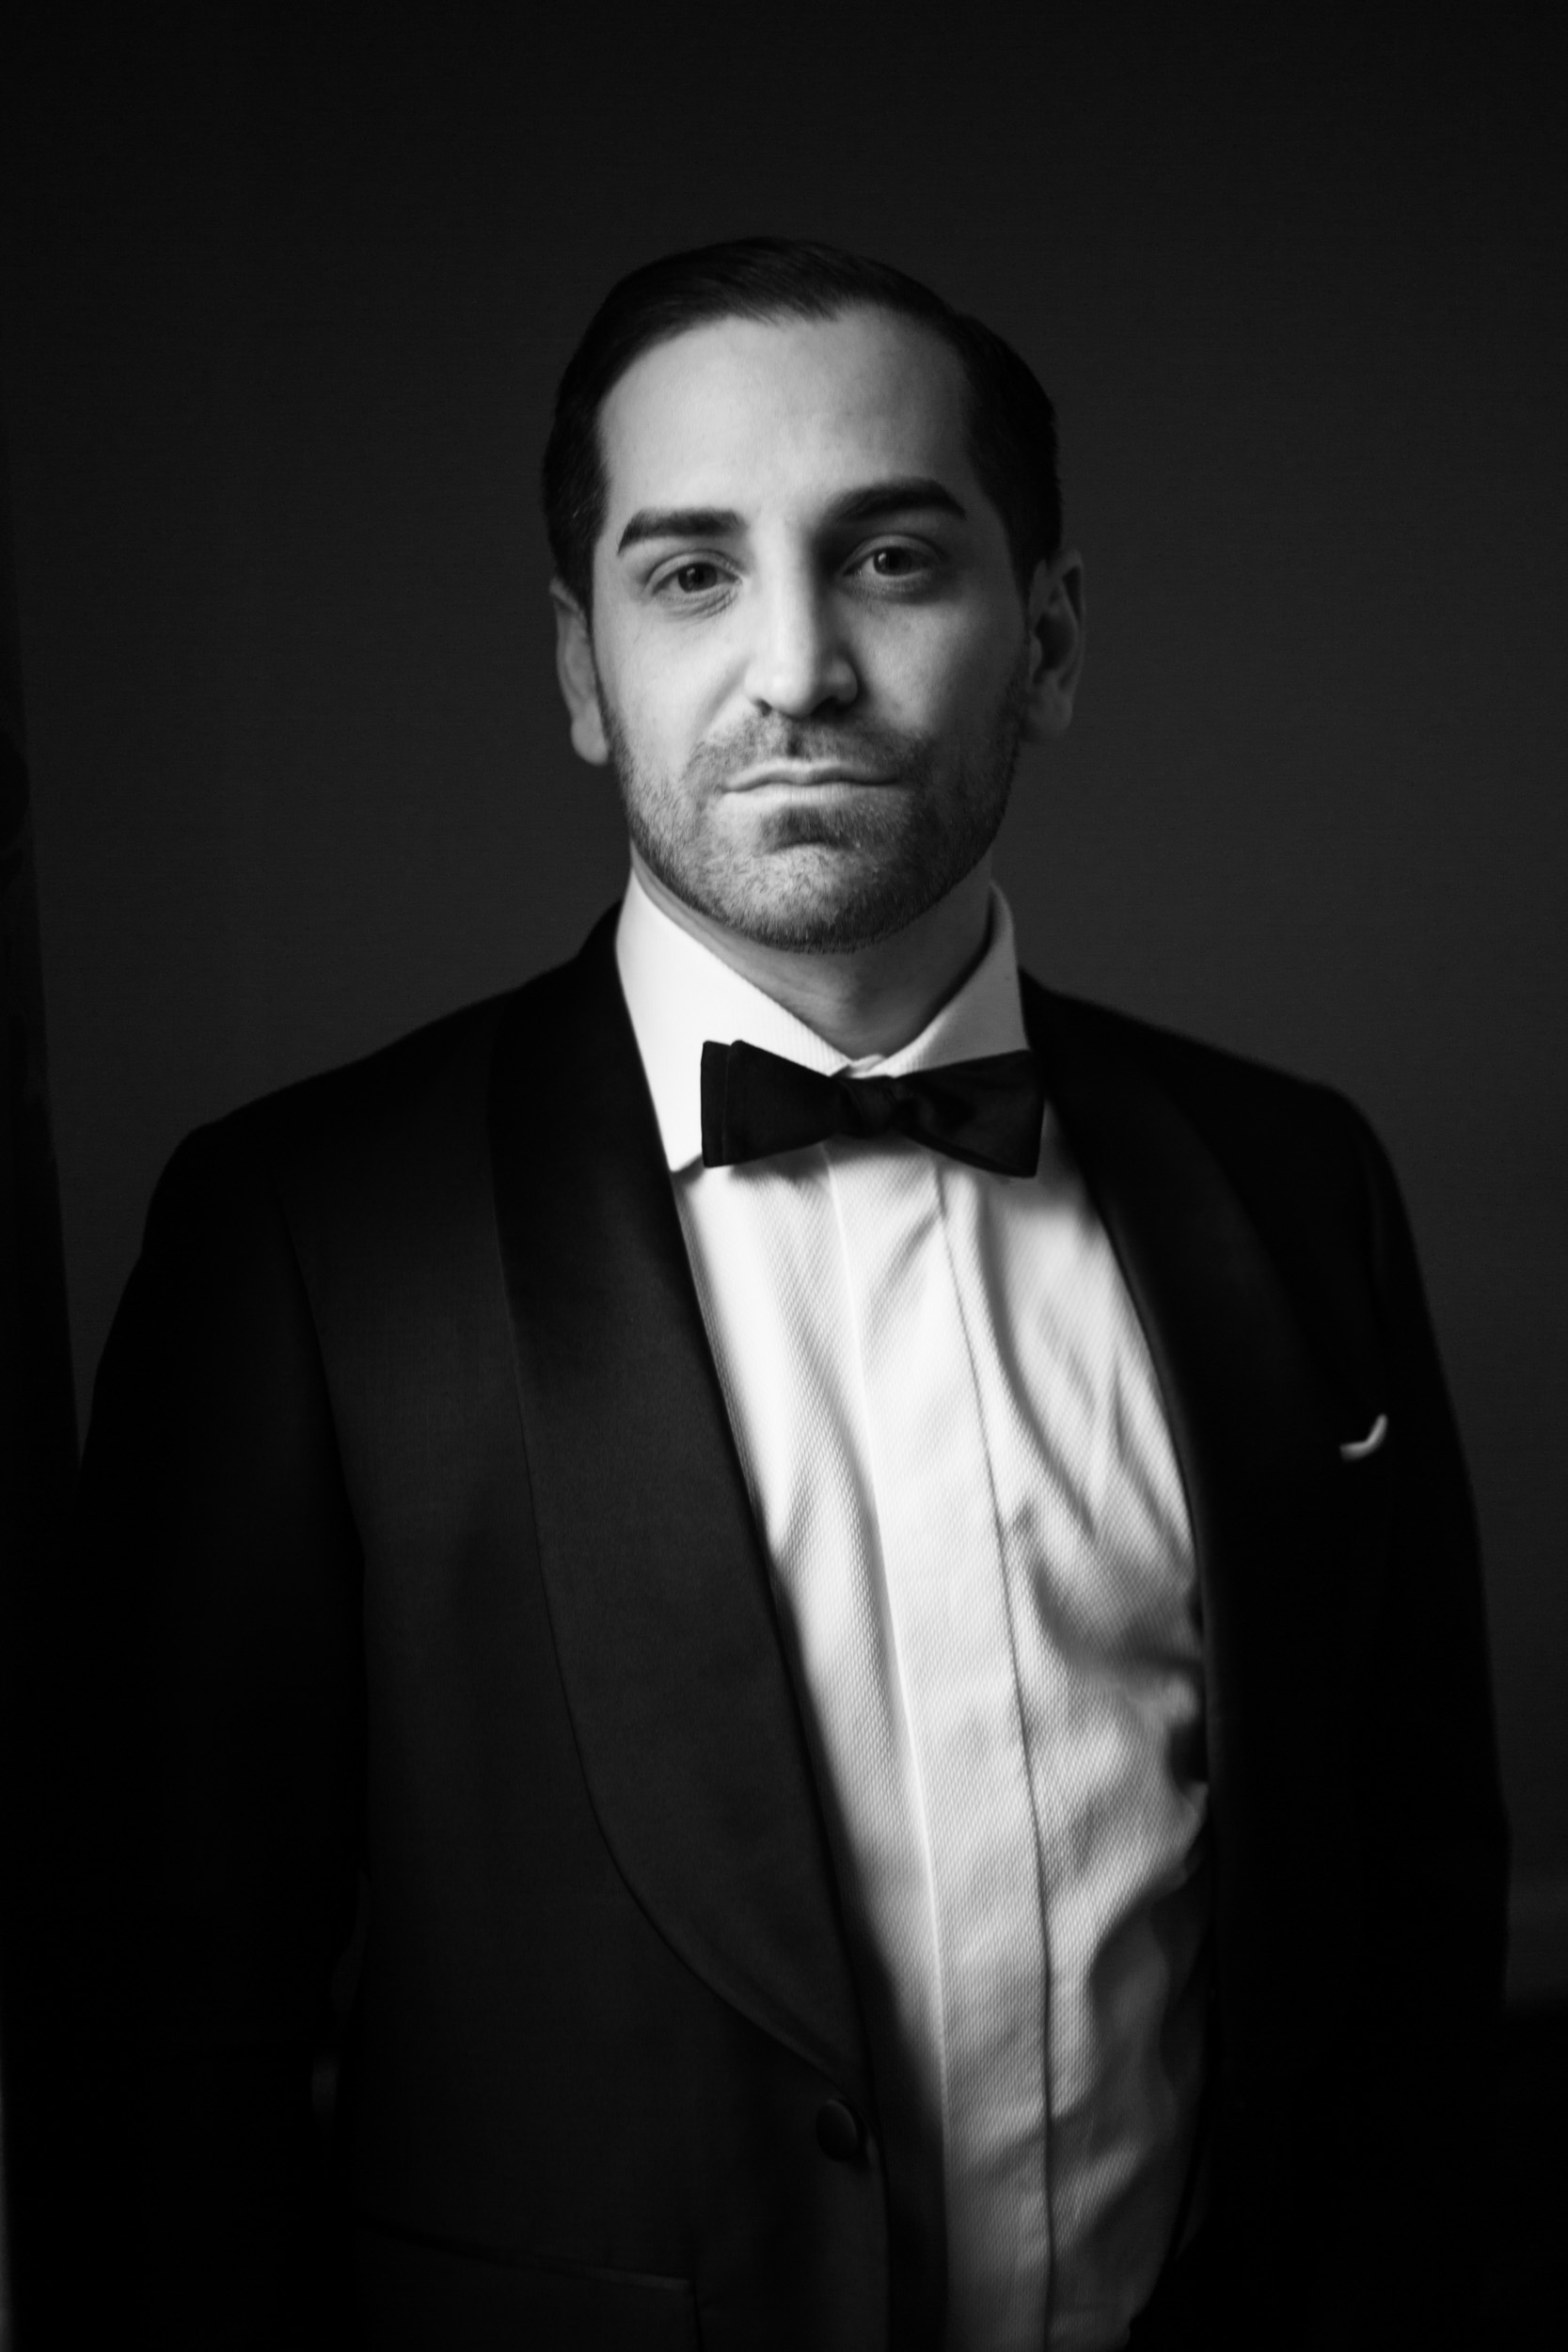 Wedding portrait of a groom at Palmer House Chicago